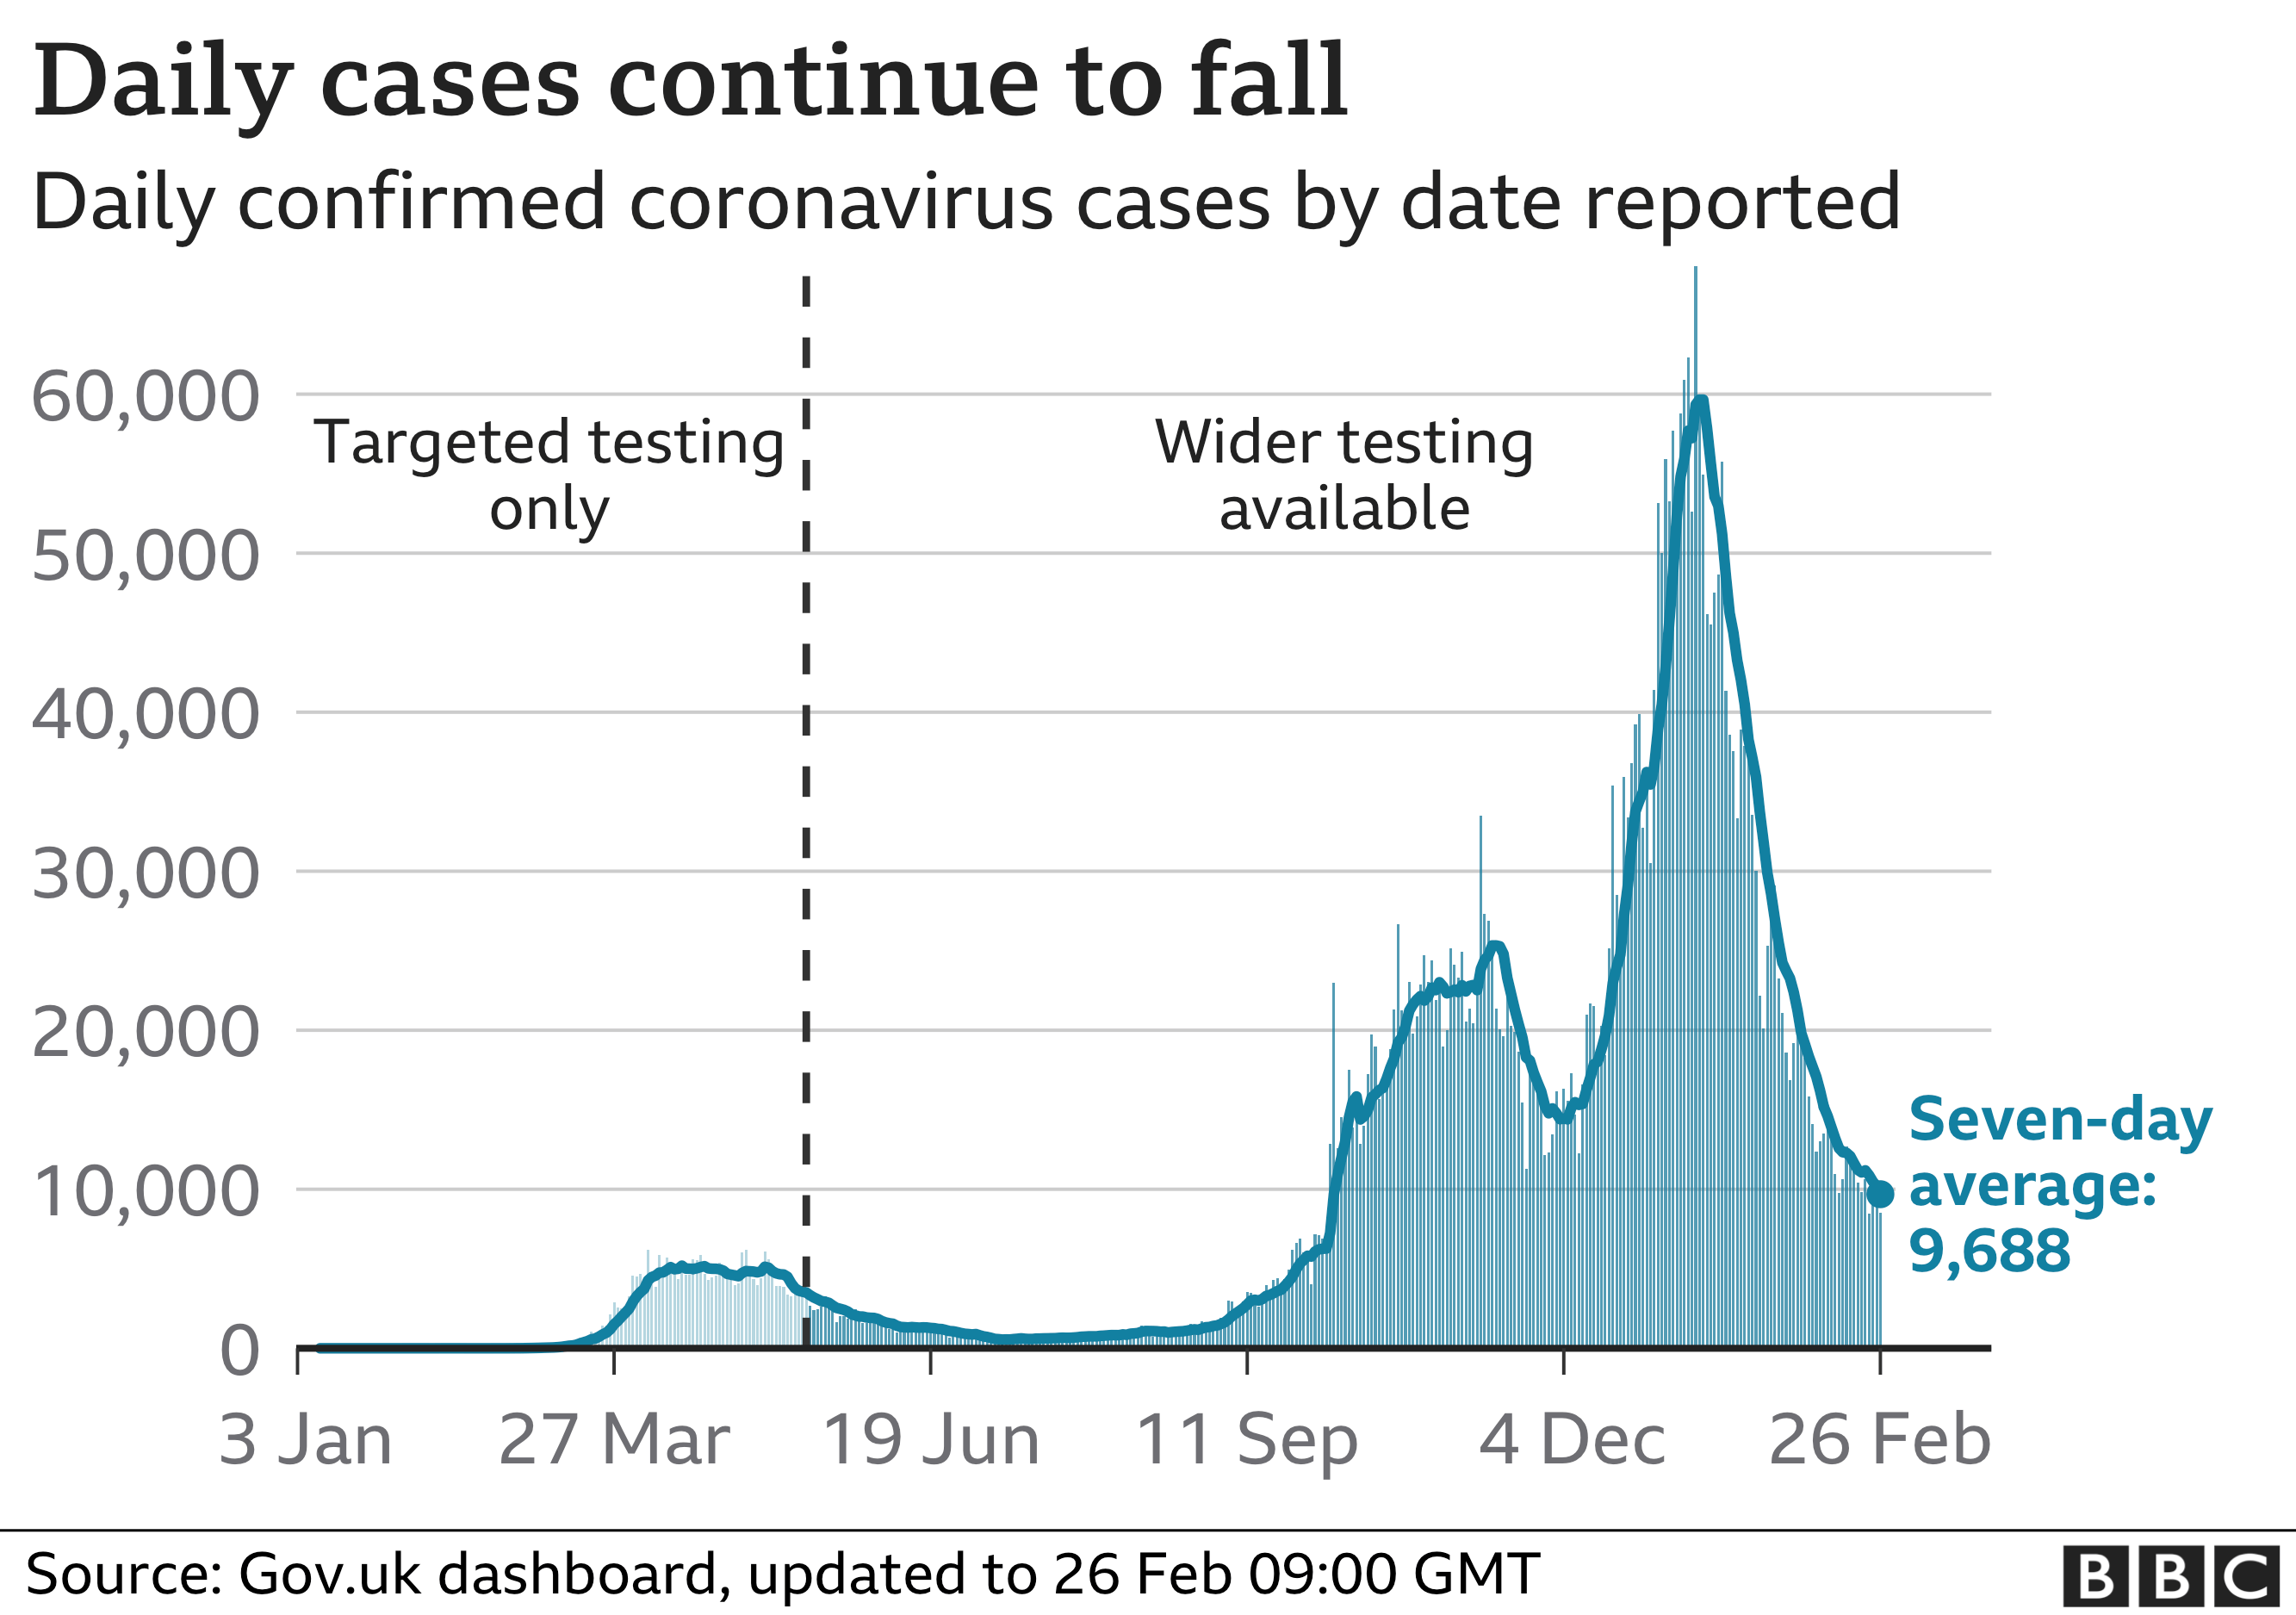 Chart showing cases continuing to fall. Updated 26 Feb